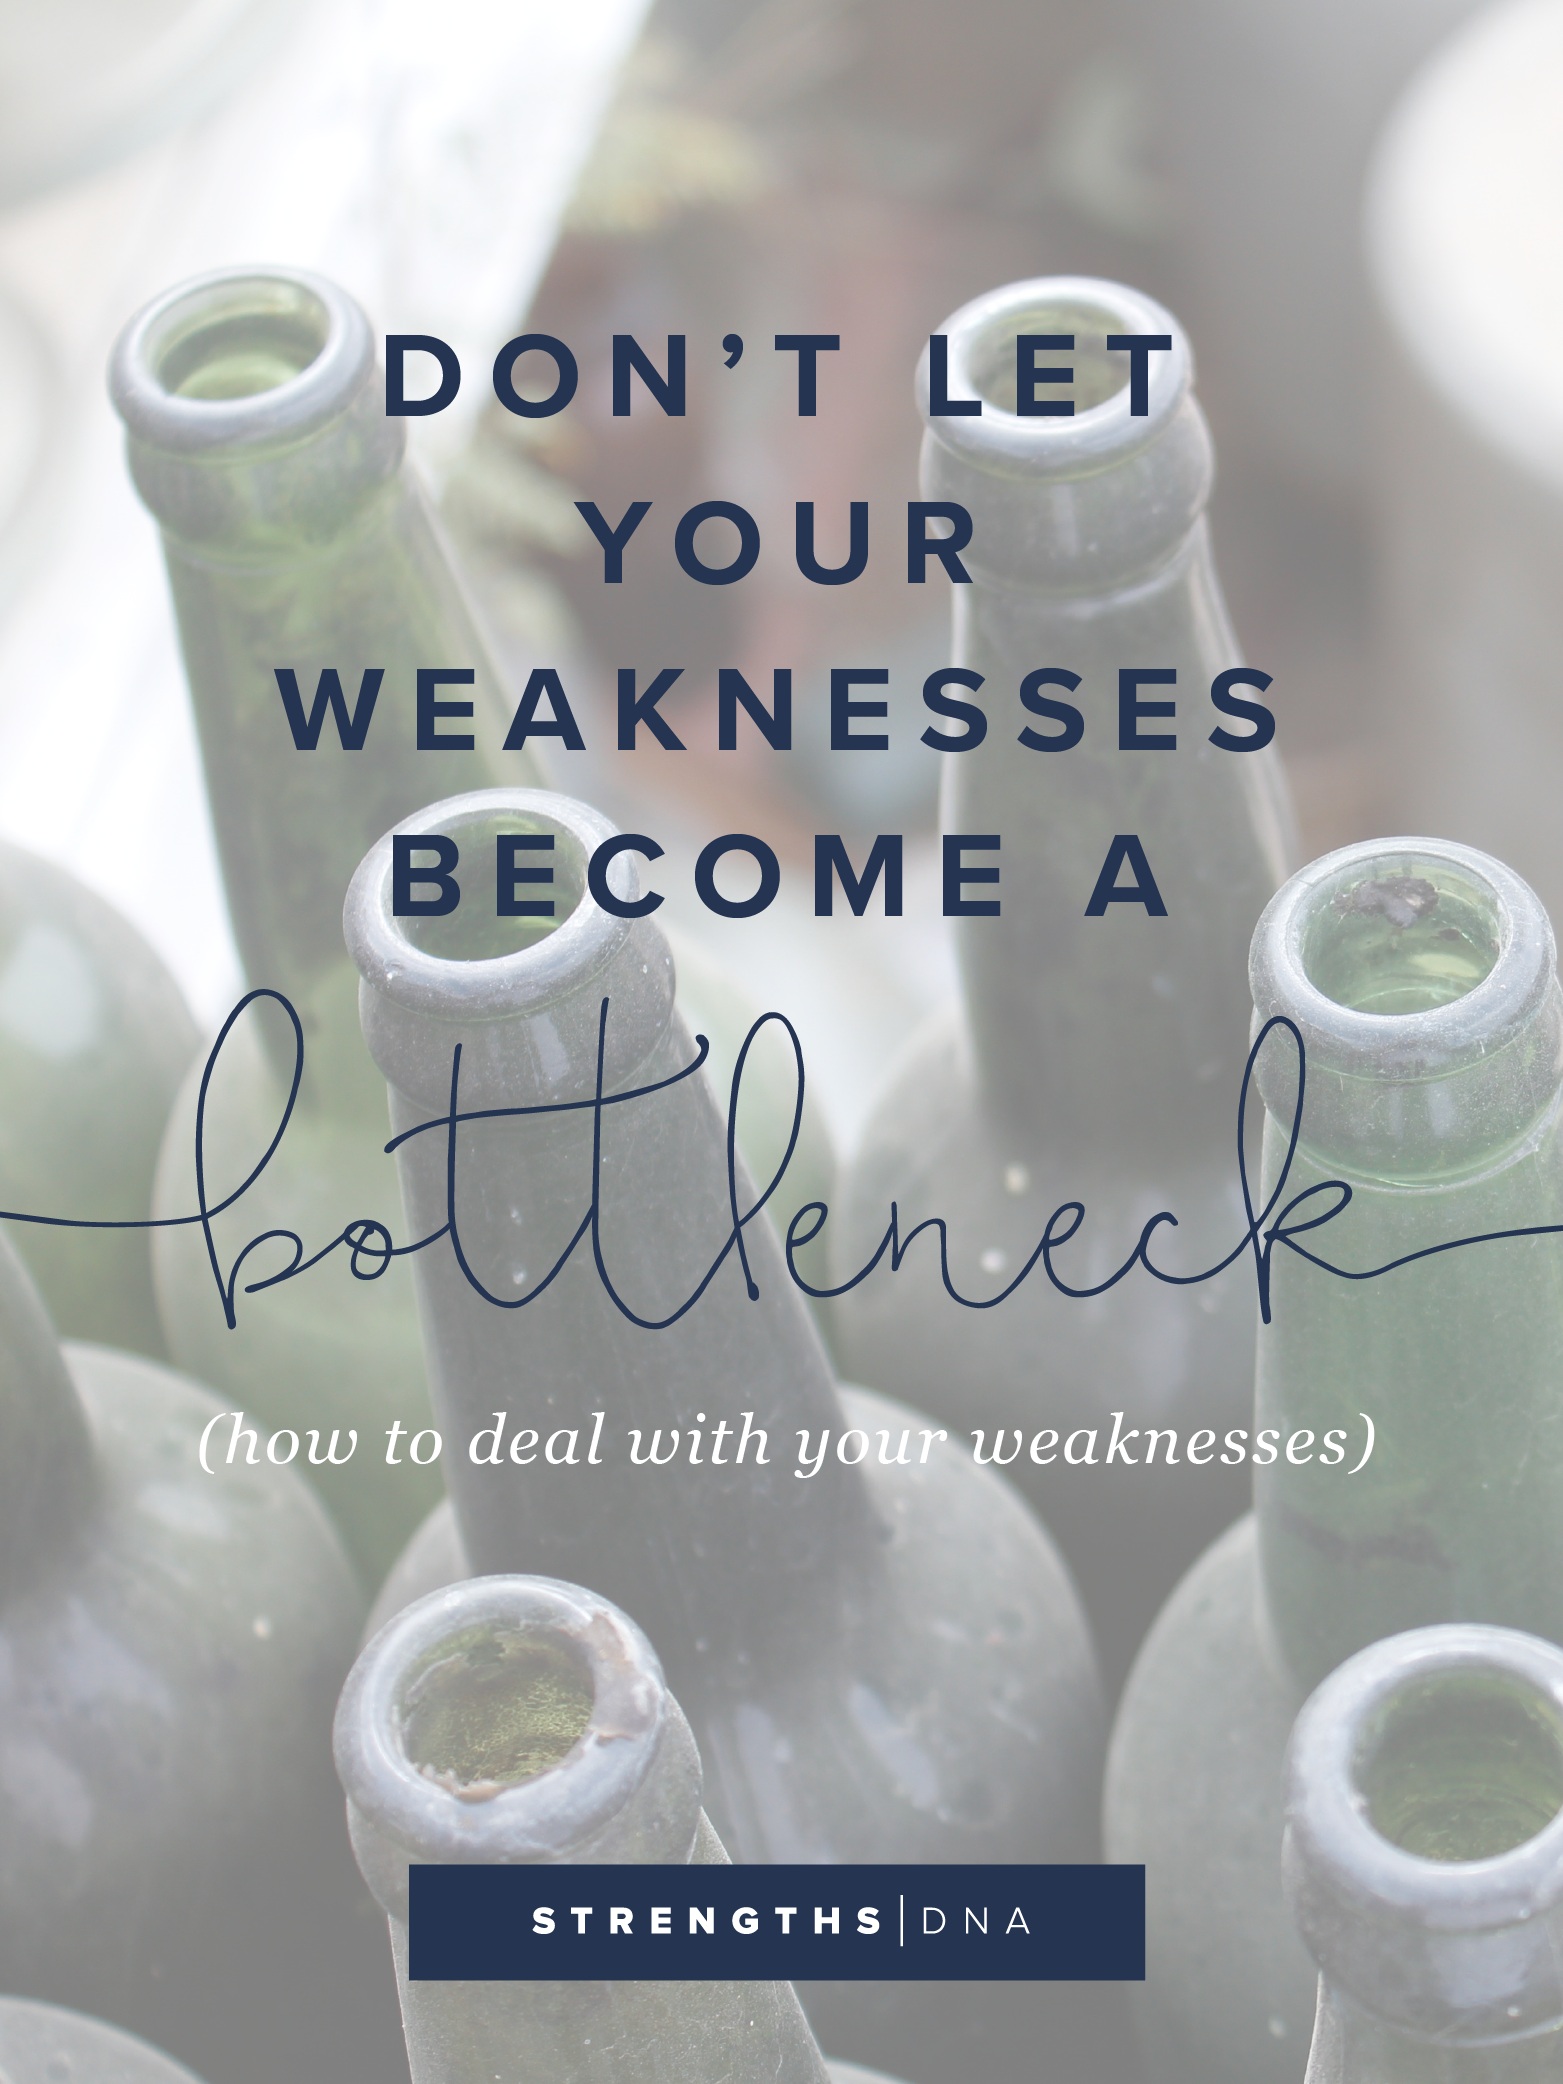 Don't Let Your Weaknesses Become a Bottleneck